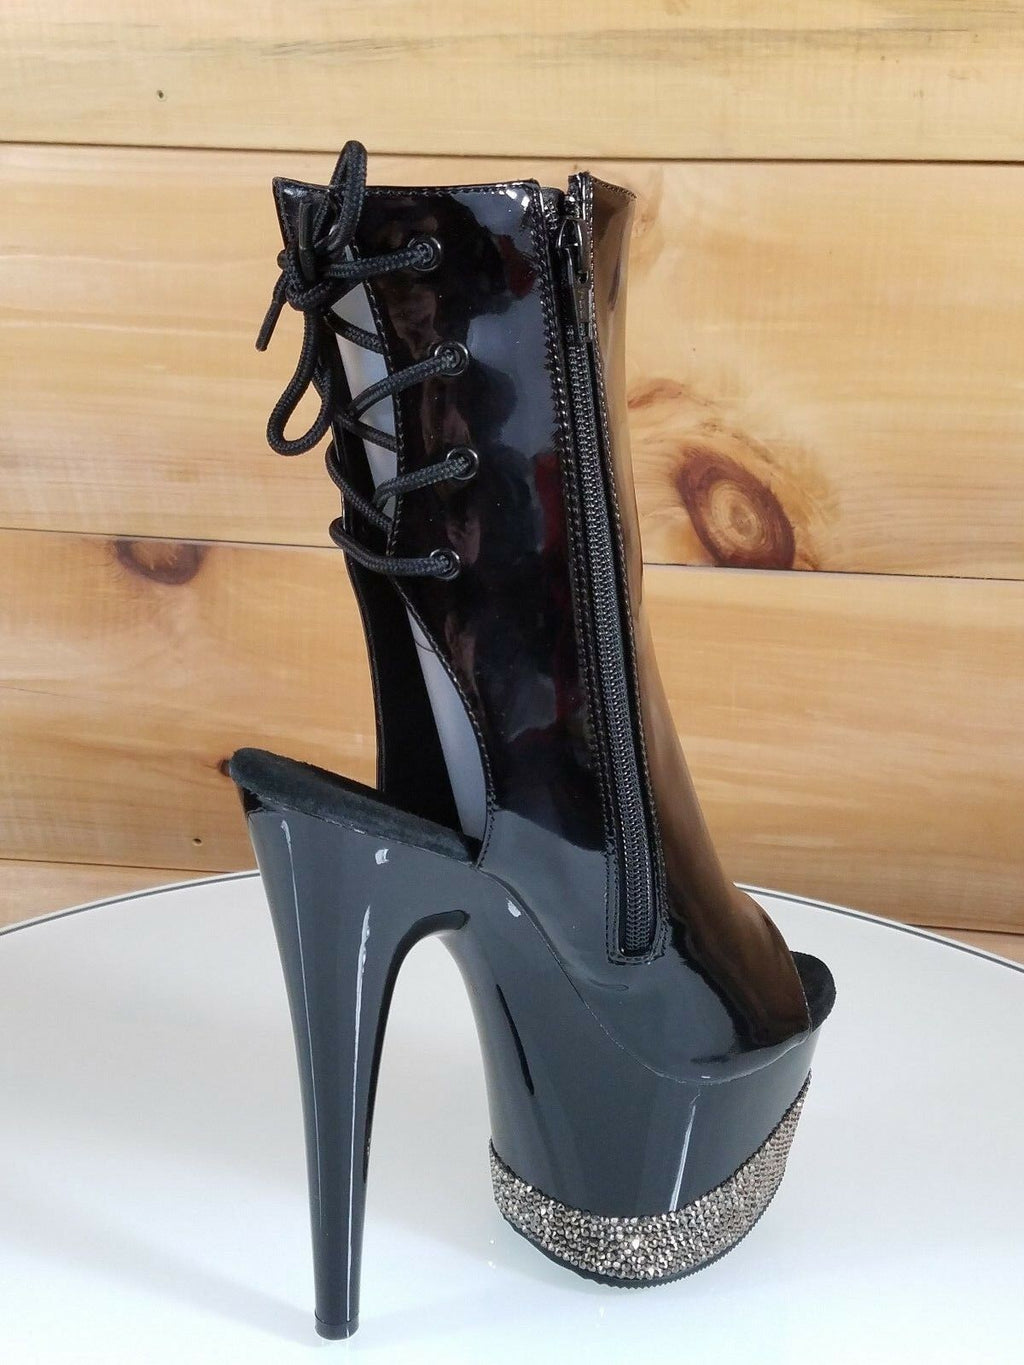 "Adore 10183 Black Patent Rhinestone Platform 7"" High Heel Ankle Boot Shoes Size 6"